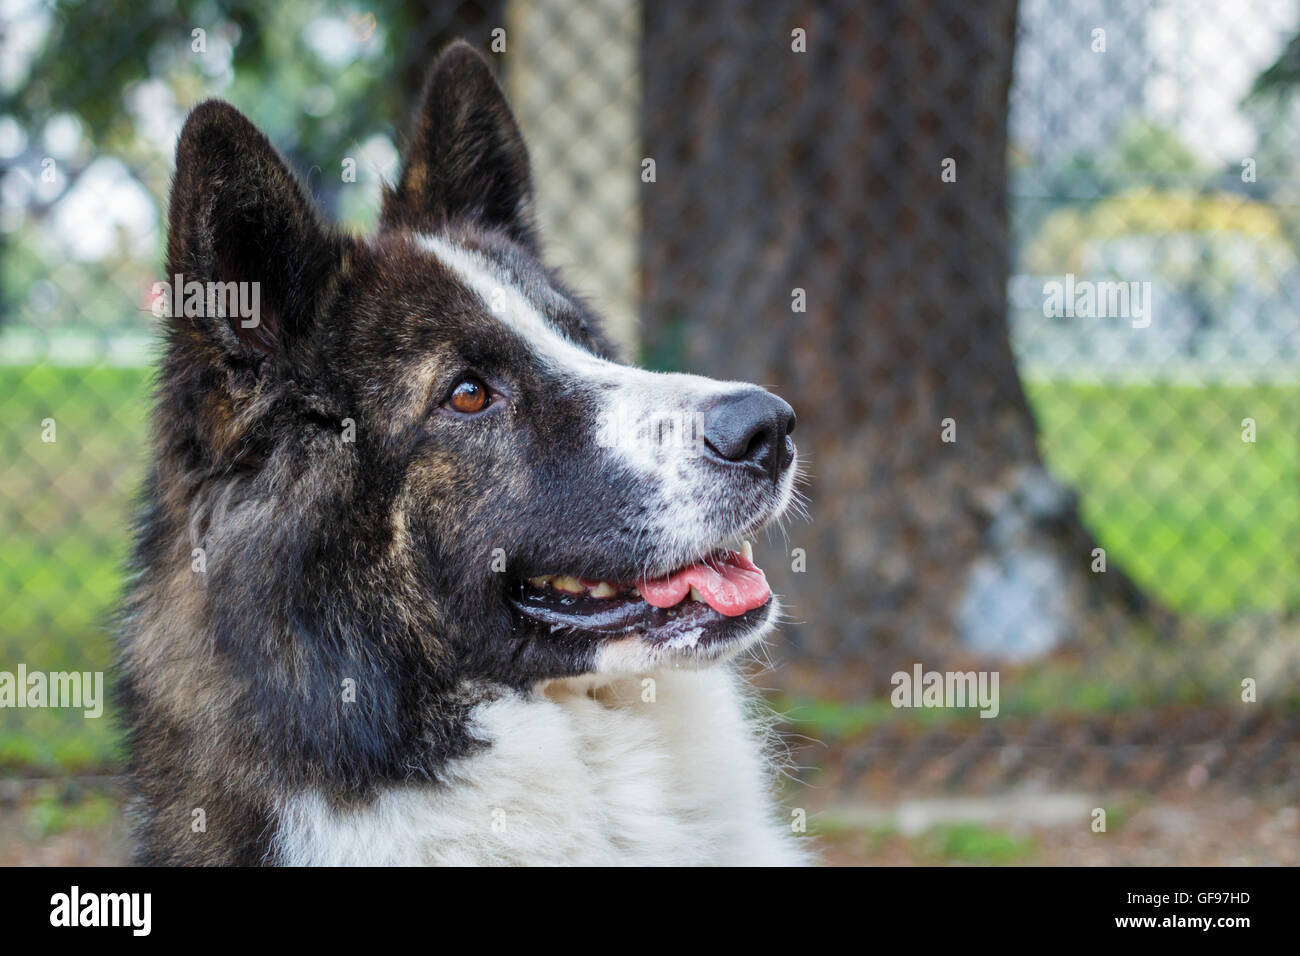 Image of a large dog - Stock Image